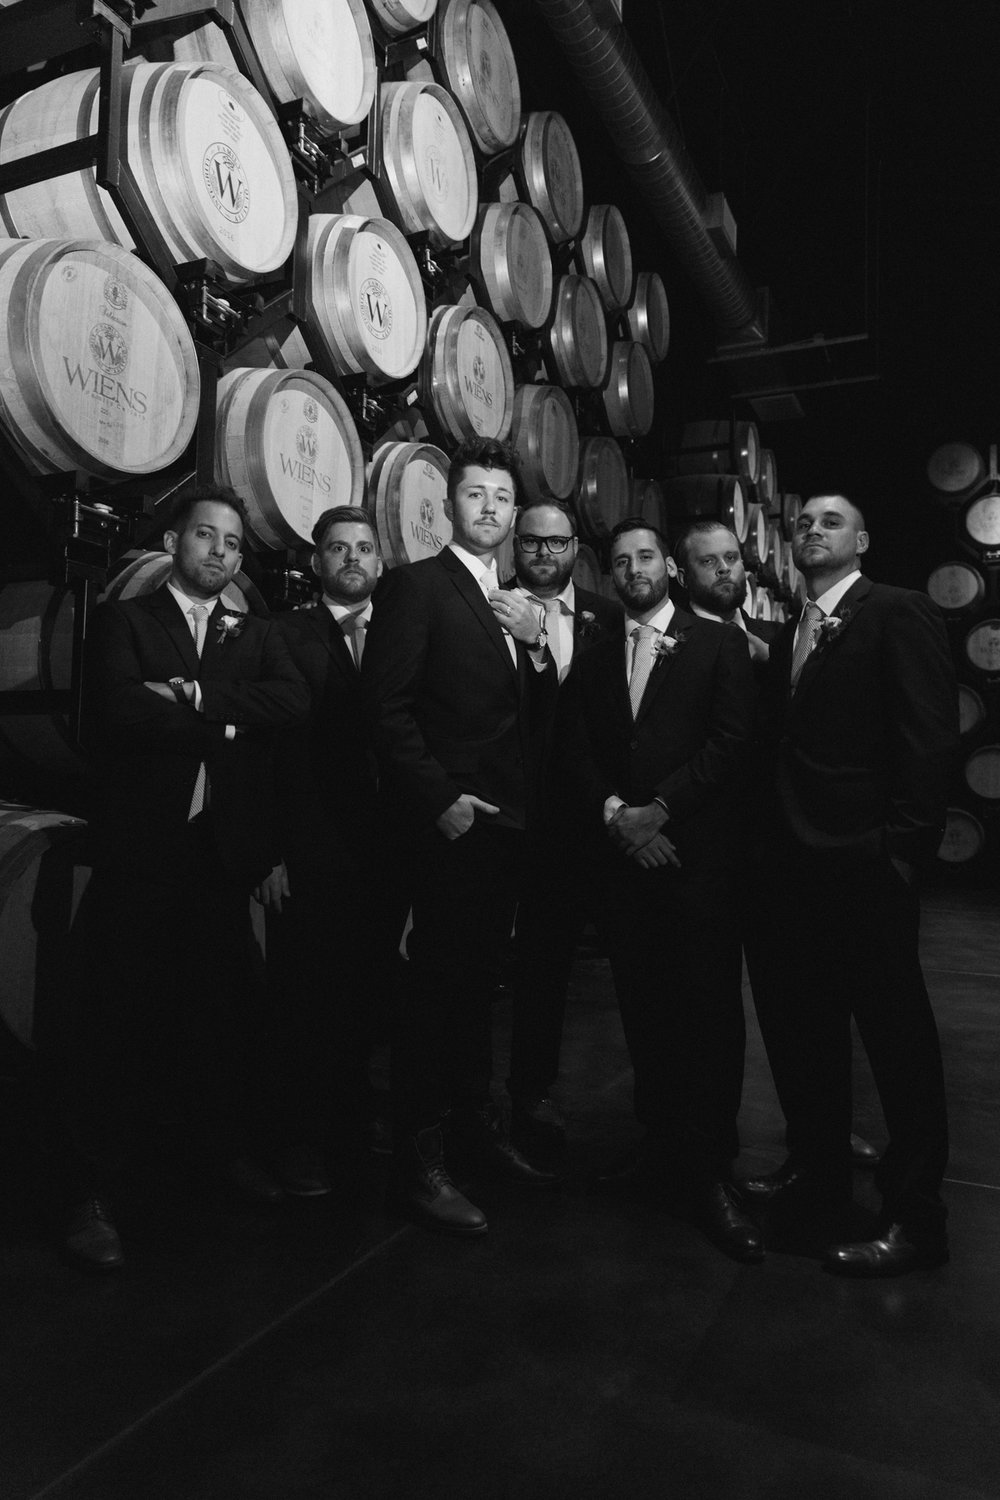 Groom and groomsmen in barrel room at Wiens Family Cellars